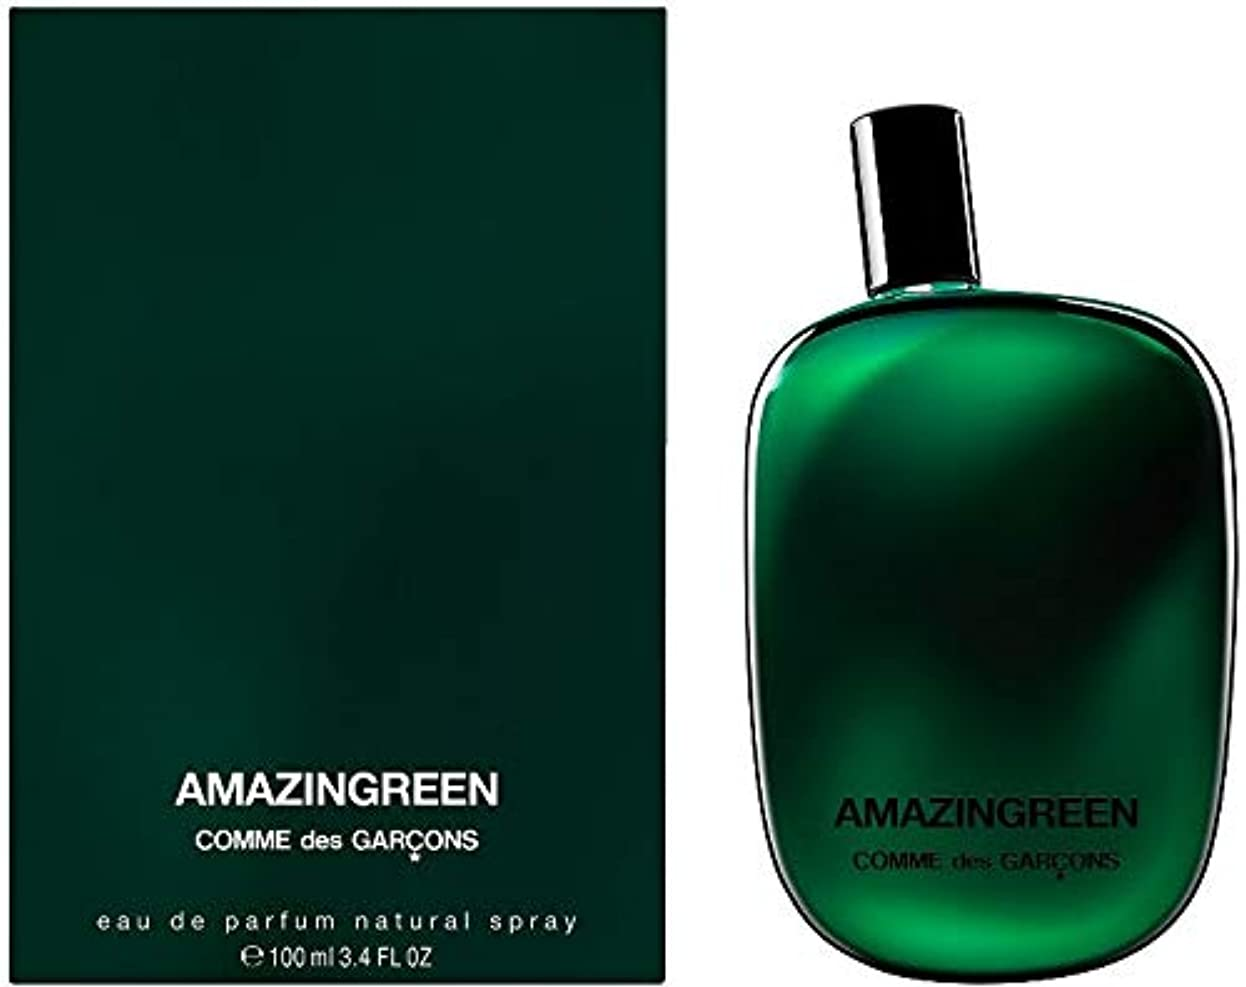 ハンカチ寄稿者進むComme des Garcons Amazingreen Eau de Parfum 25 ml New in Box